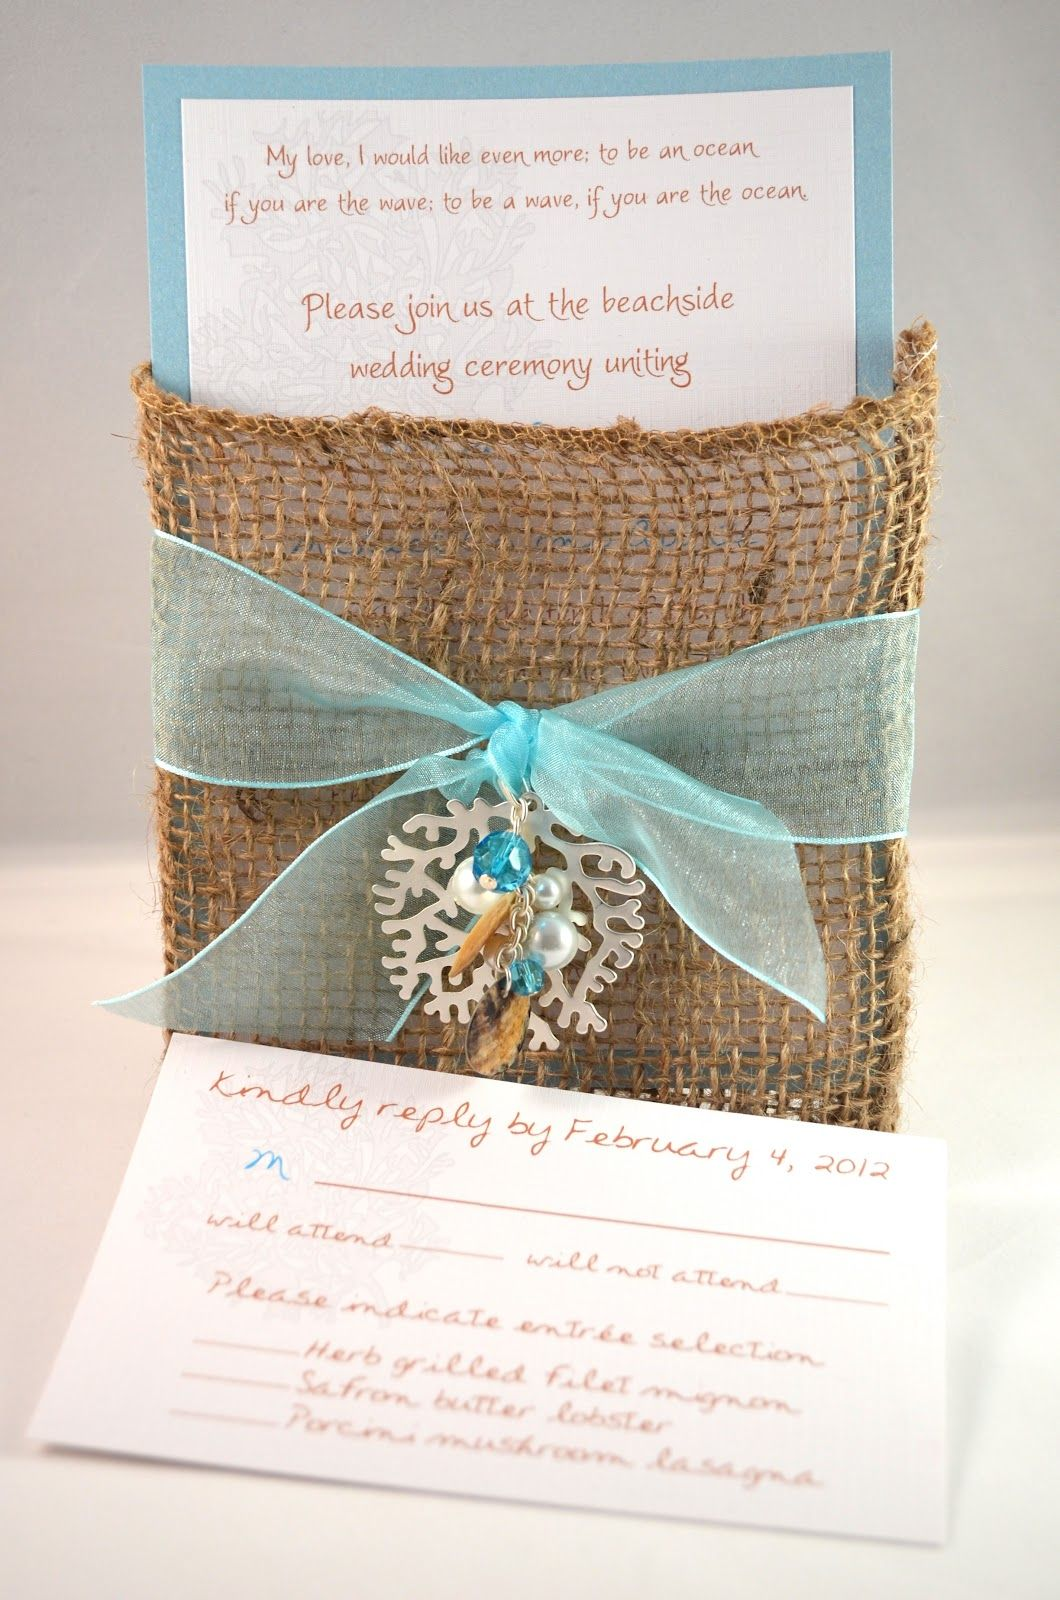 Coral Reef Wedding Invite | Wedding Invitations | Pinterest | Coral ...